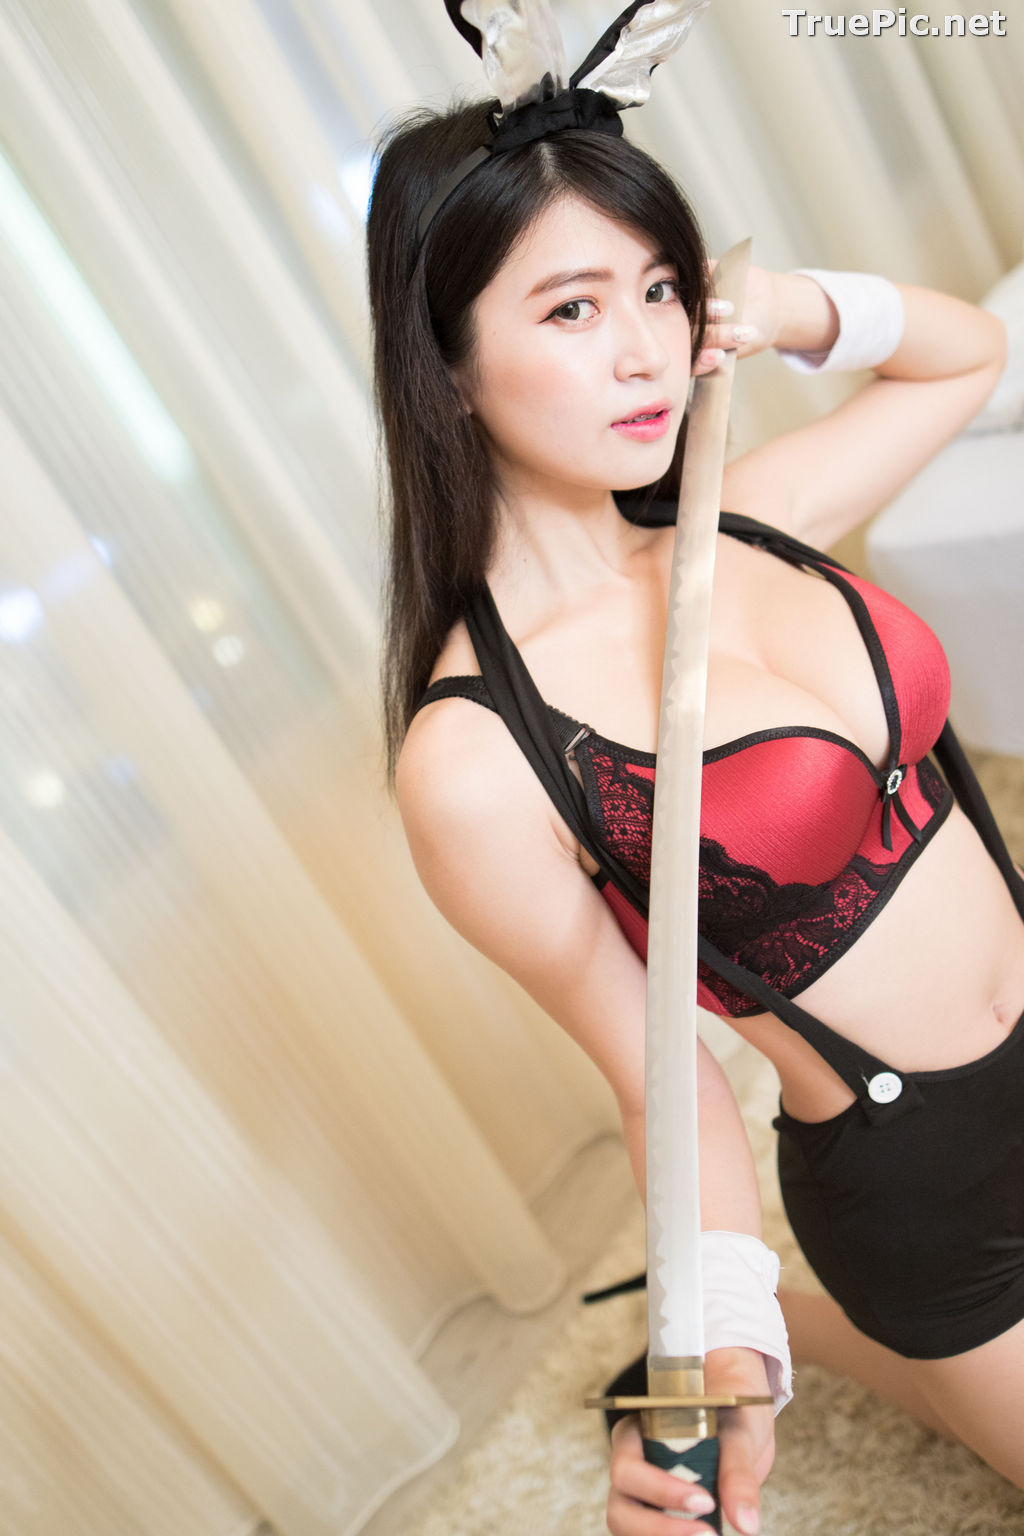 Image Taiwanese Hot Model - Sexy Kendo Girl - TruePic.net - Picture-2